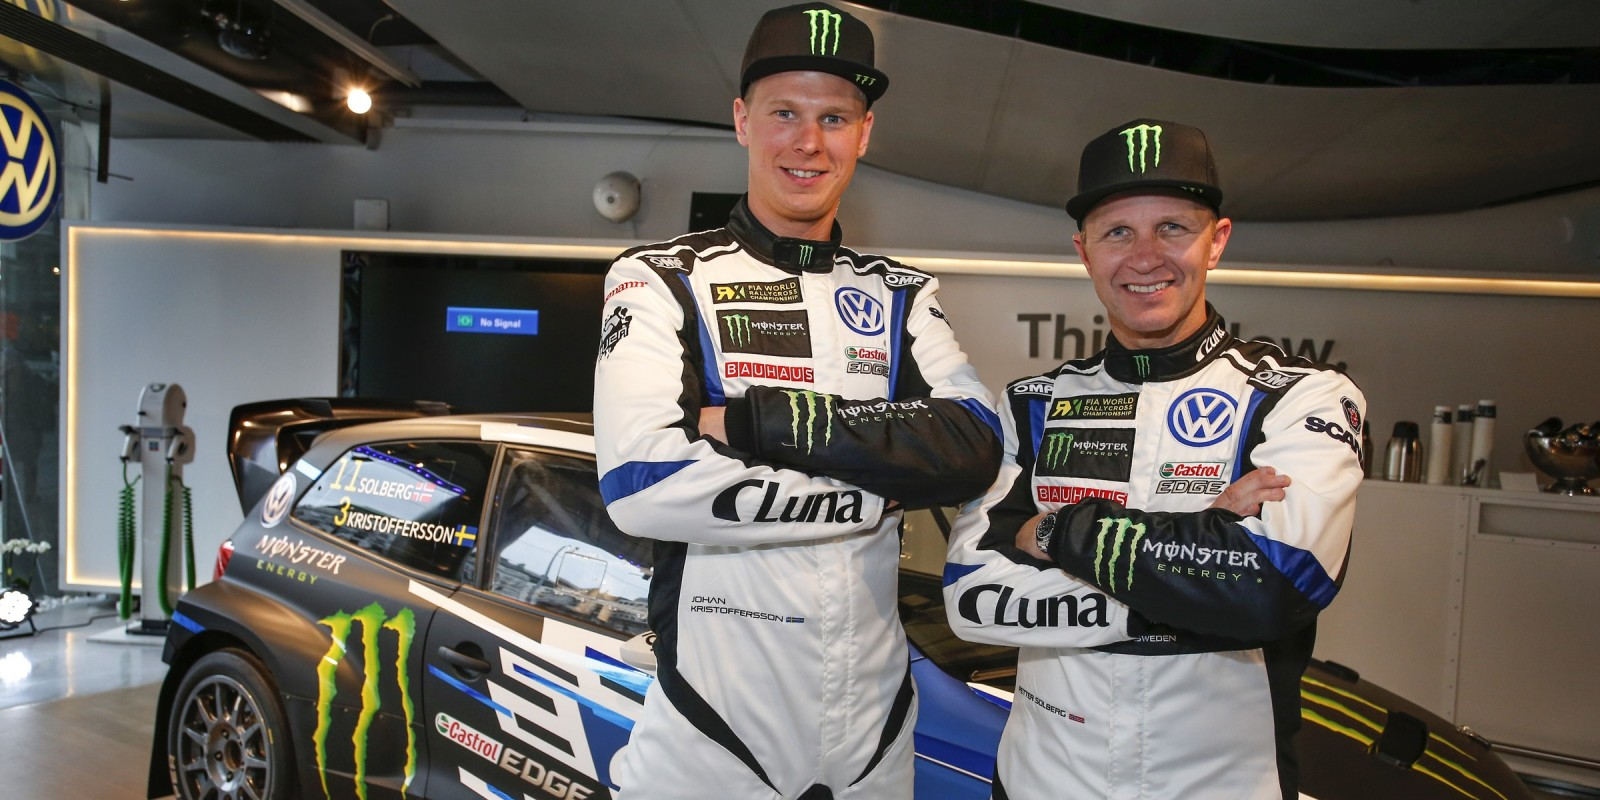 Petter Solberg and Johan Kristoffersson at the 2017 PSRX Team launch in Stockholm, Sweden